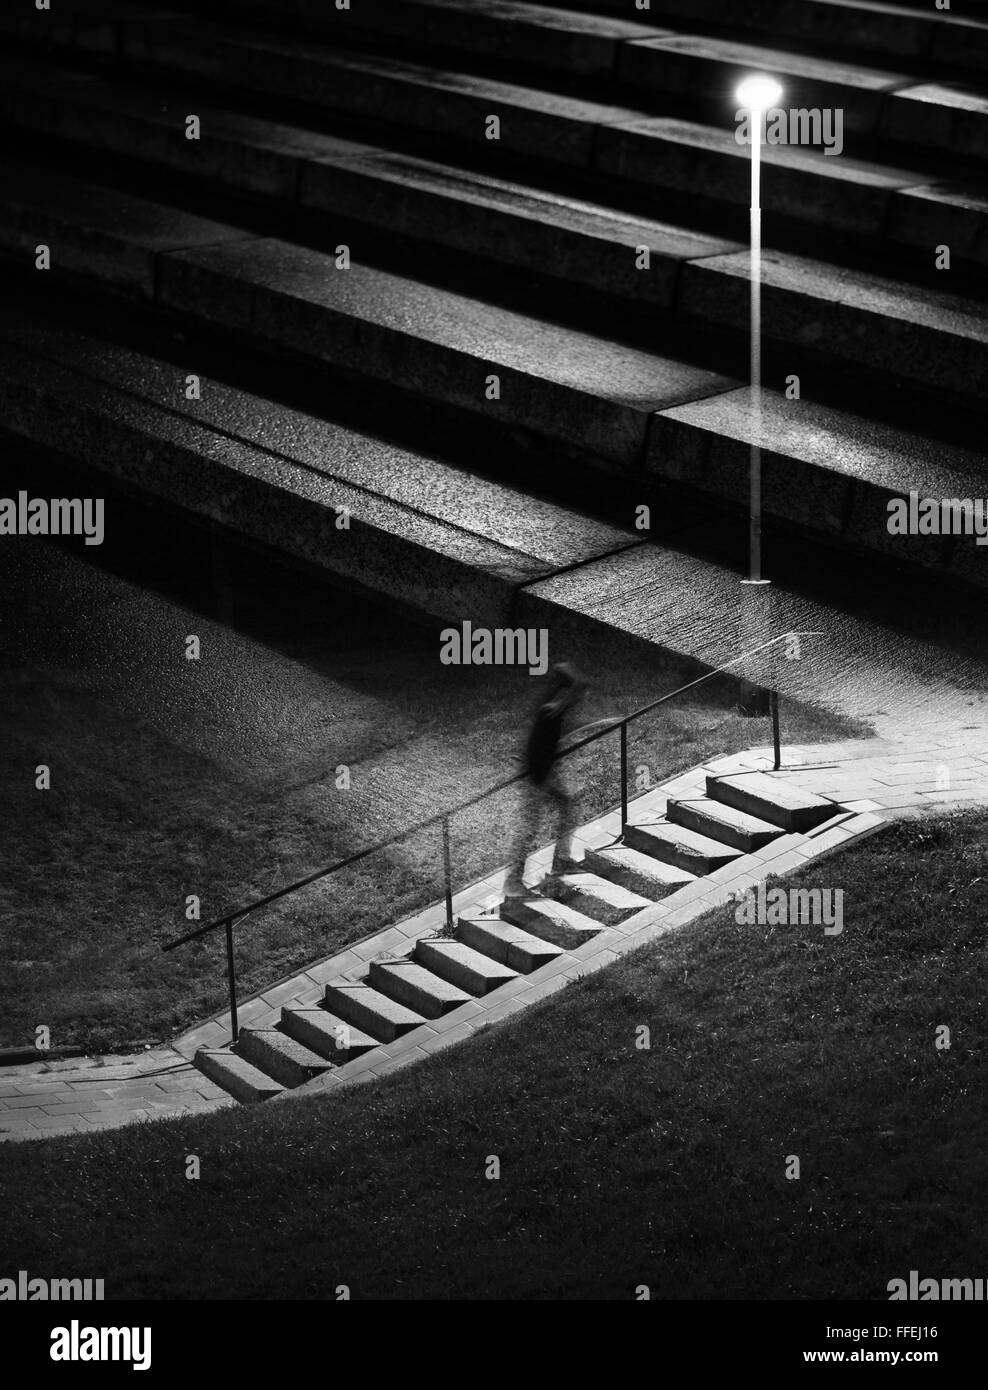 Double exposure night scene. Human figure in motion blur walking up stairs. - Stock Image